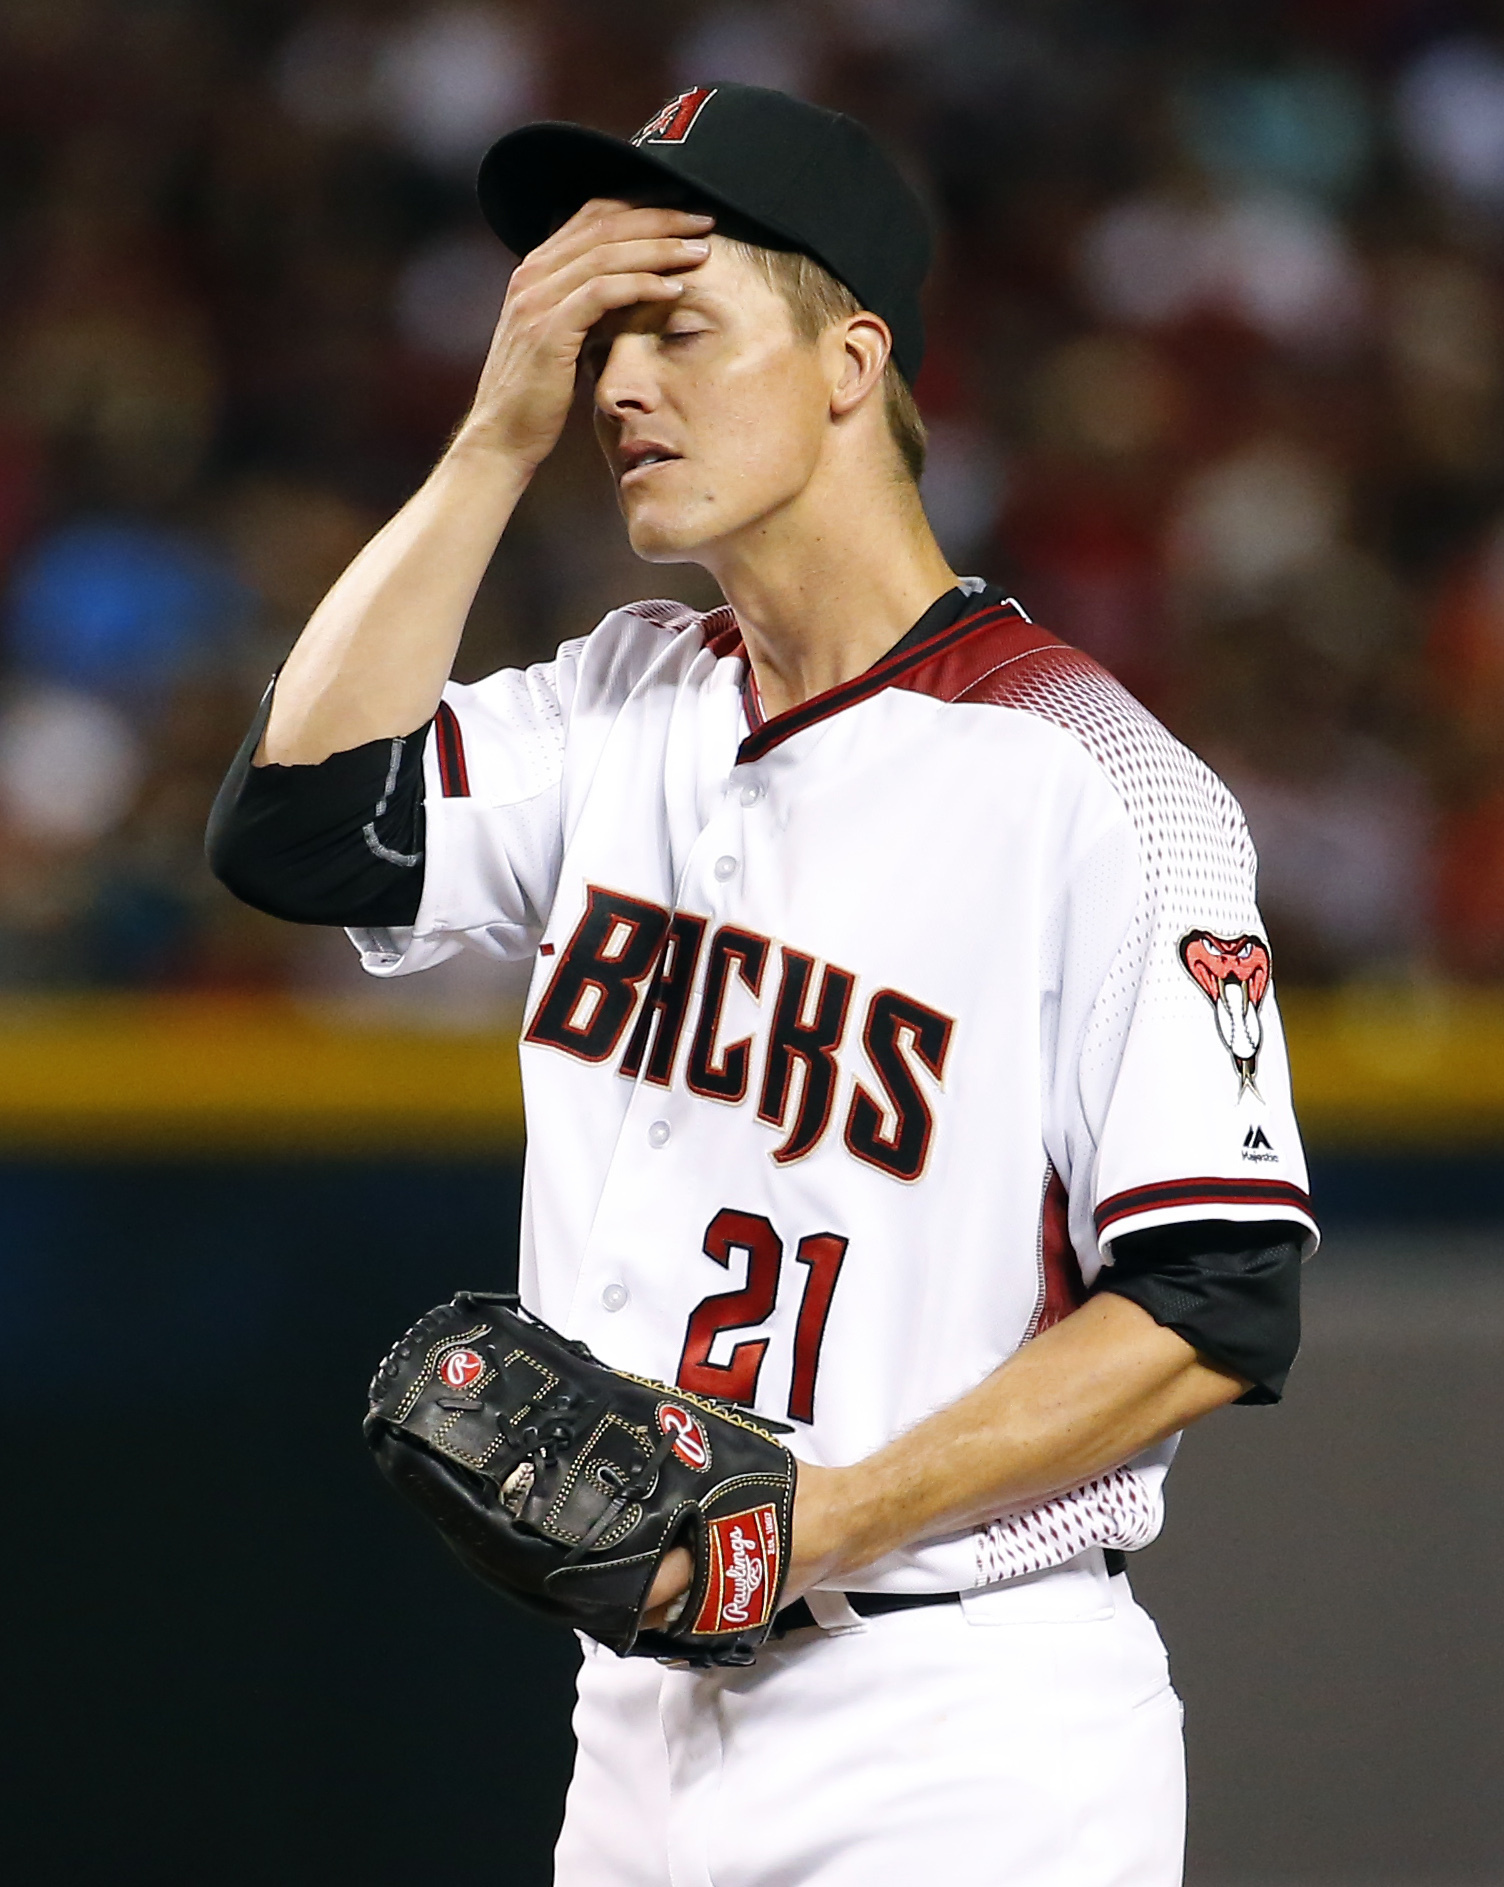 Arizona Diamondbacks starting pitcher Zack Greinke (21) reacts to giving up a home run against the Colorado Rockies during the fourth inning of a baseball game, Monday, April 4, 2016, in Phoenix. (AP Photo/Matt York)